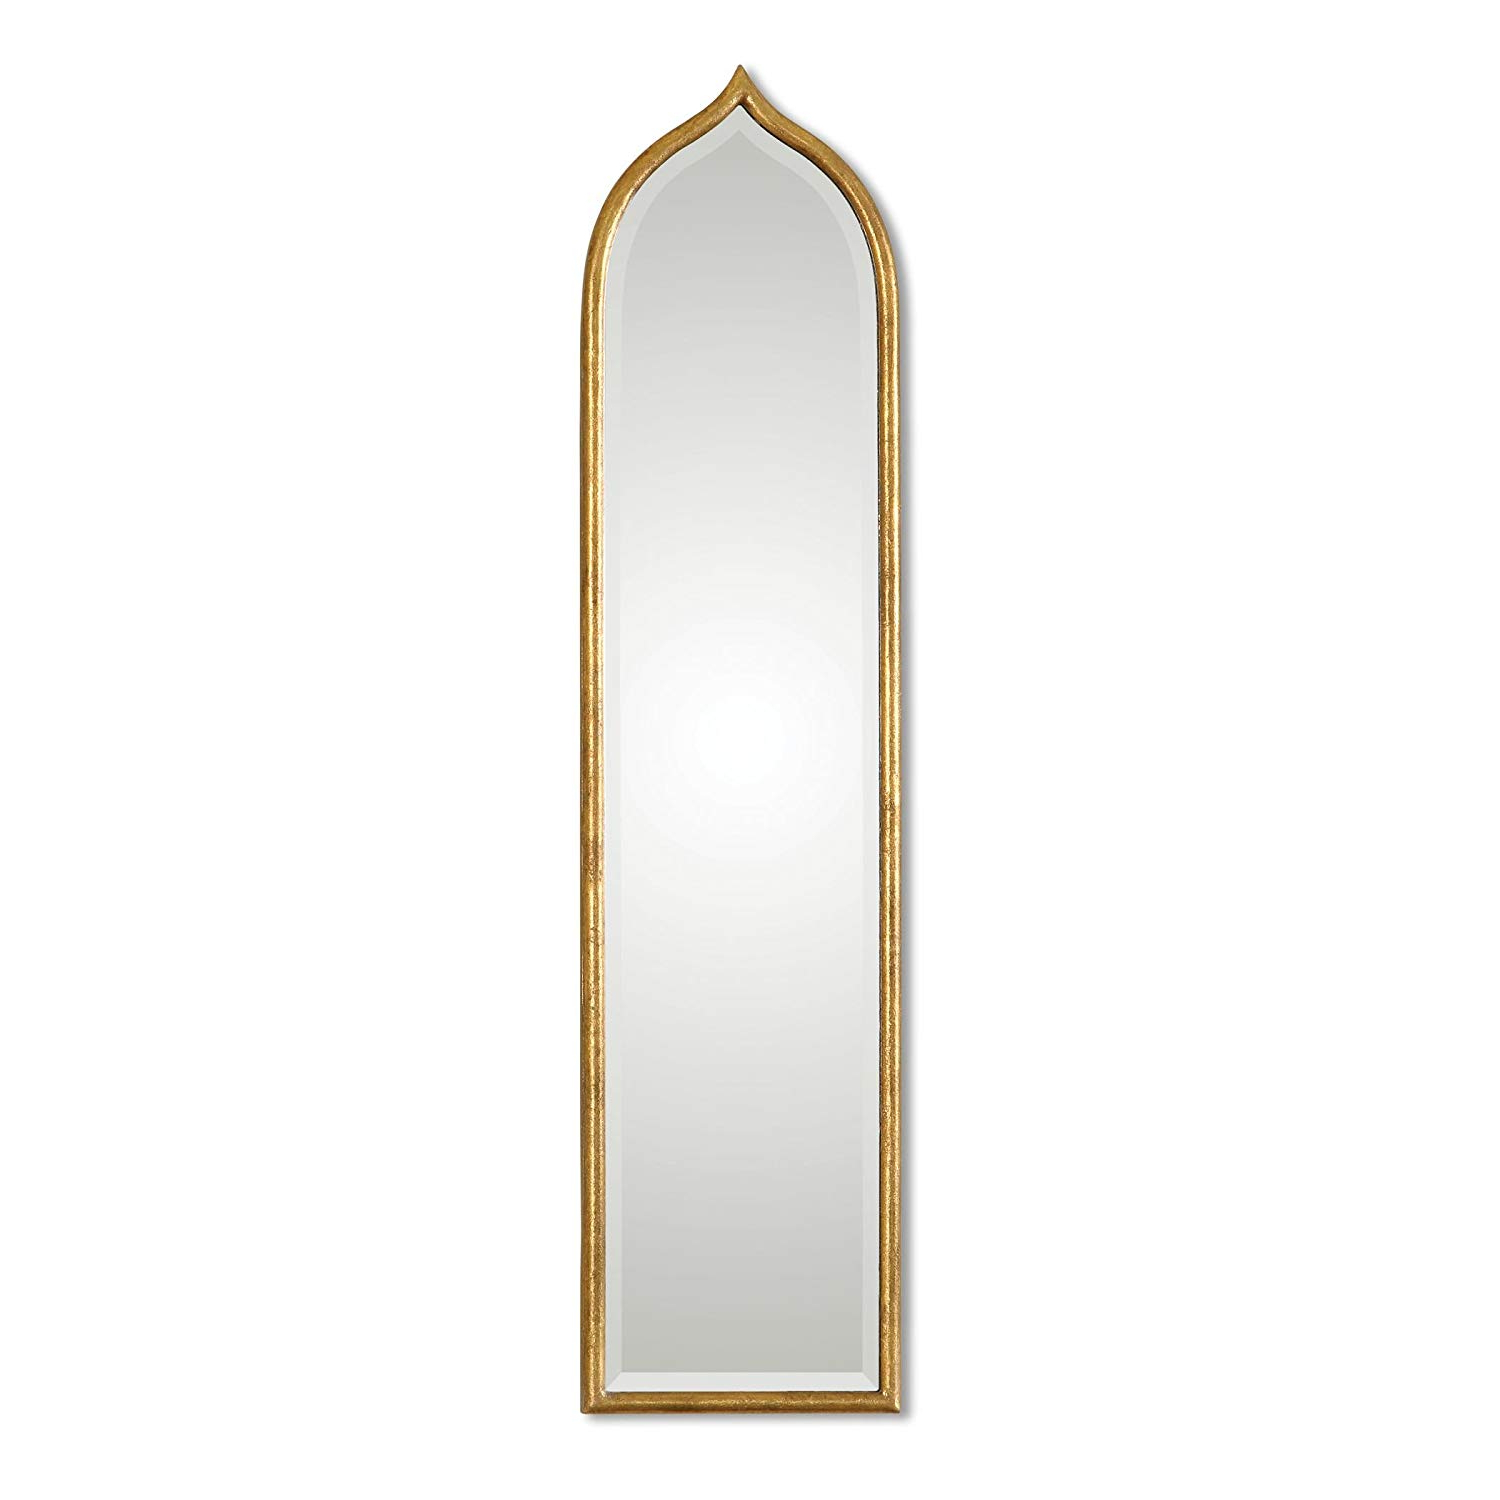 Amazon: Zinc Decor Narrow Arch Gold Leaf Beveled Wall Mirror Within Most Recently Released Narrow Wall Mirrors (View 2 of 20)